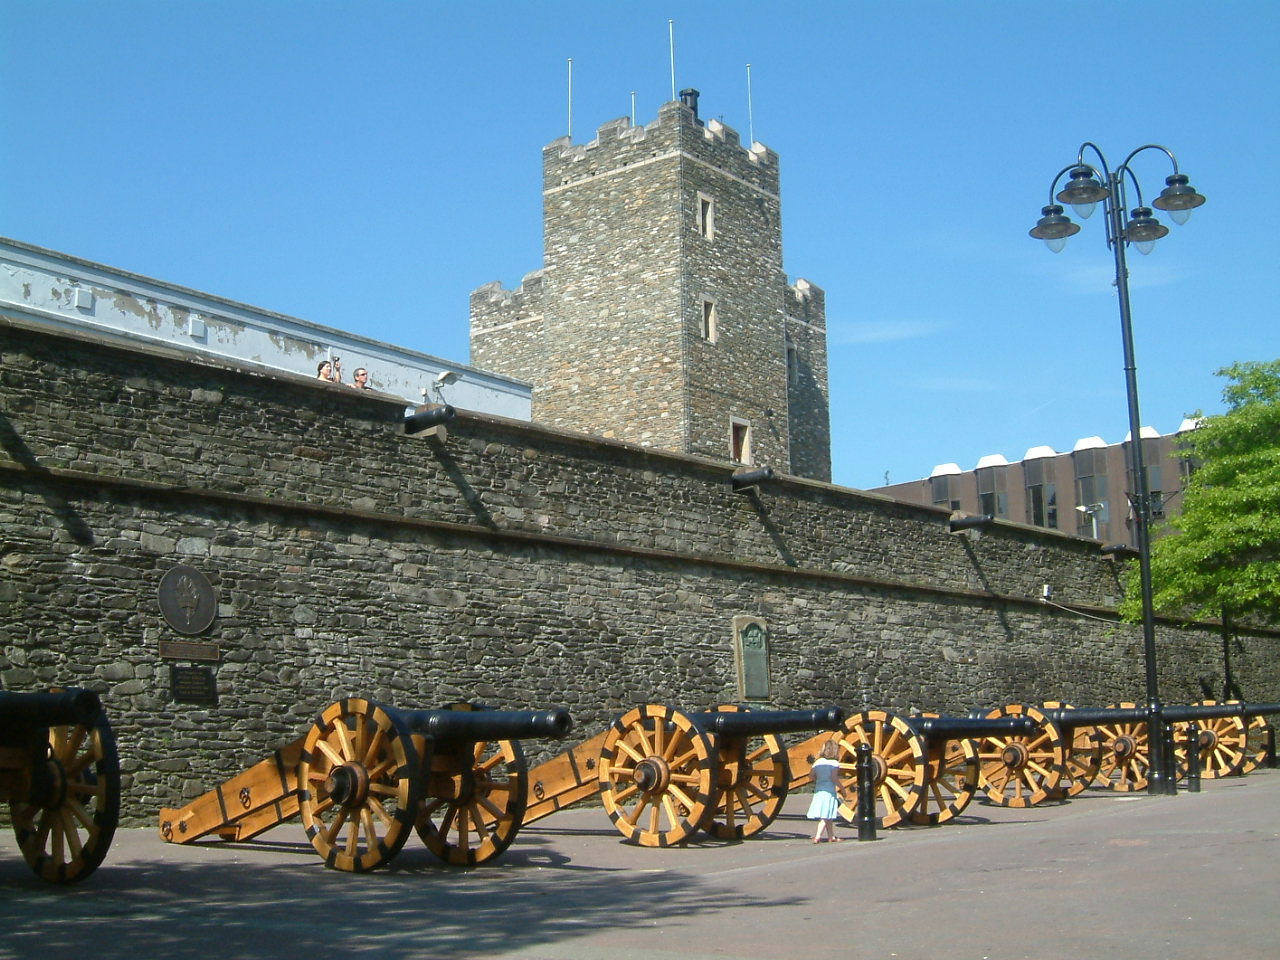 The City Walls of Londonderry